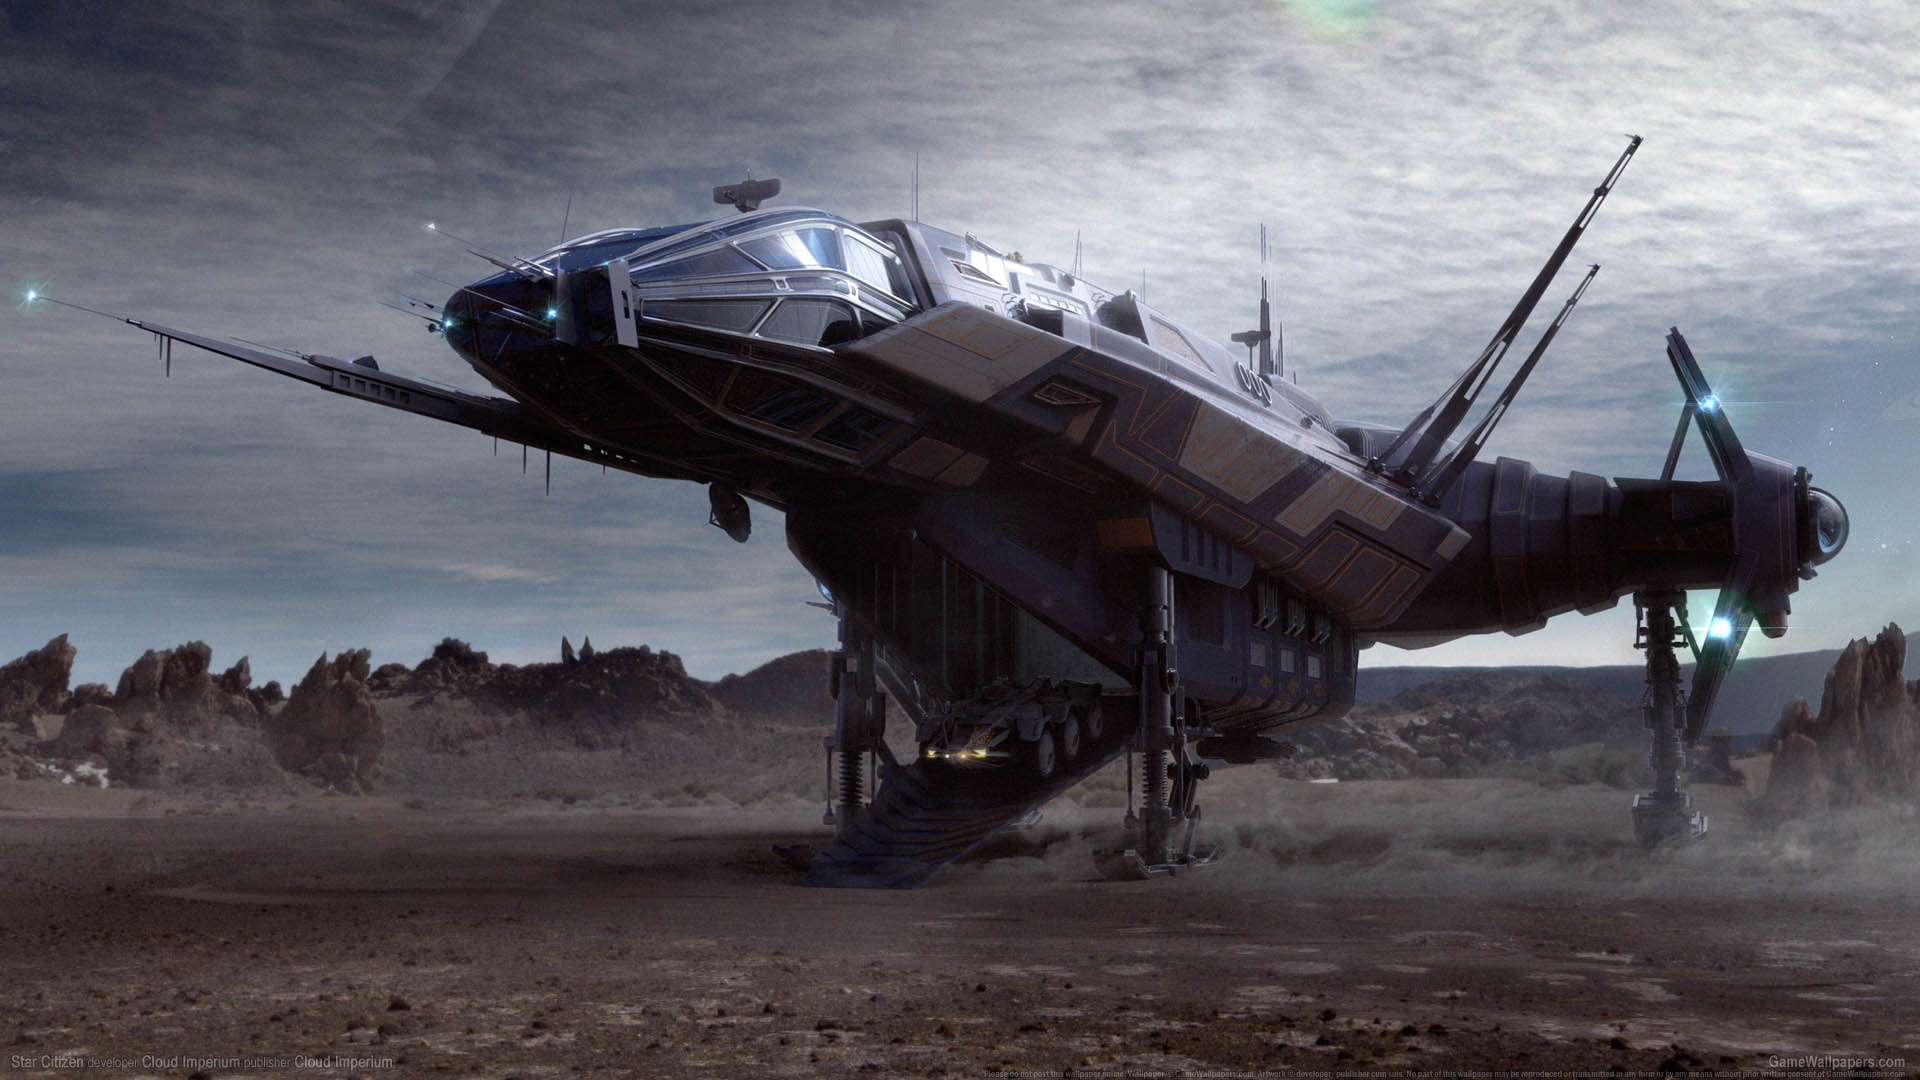 Star Citizen Wallpaper 1080p: Star Citizen Wallpaper 08 1920x1080